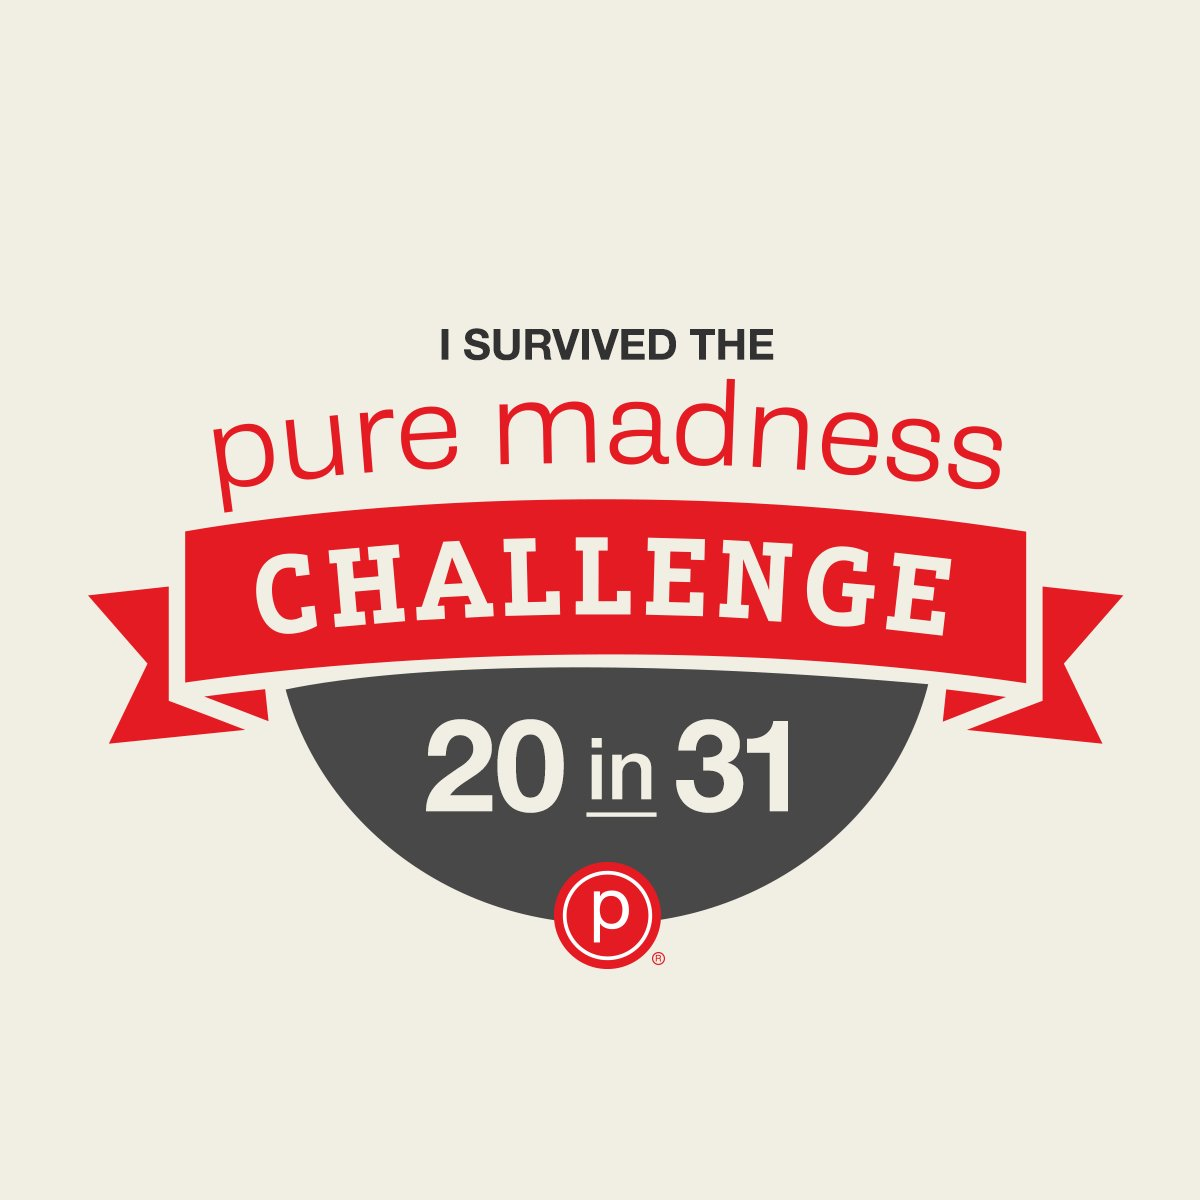 Congratulations to everyone who conquered the #PureMadnessChallenge! Share this badge to show your accomplishment. https://t.co/JnzsRWeNqj